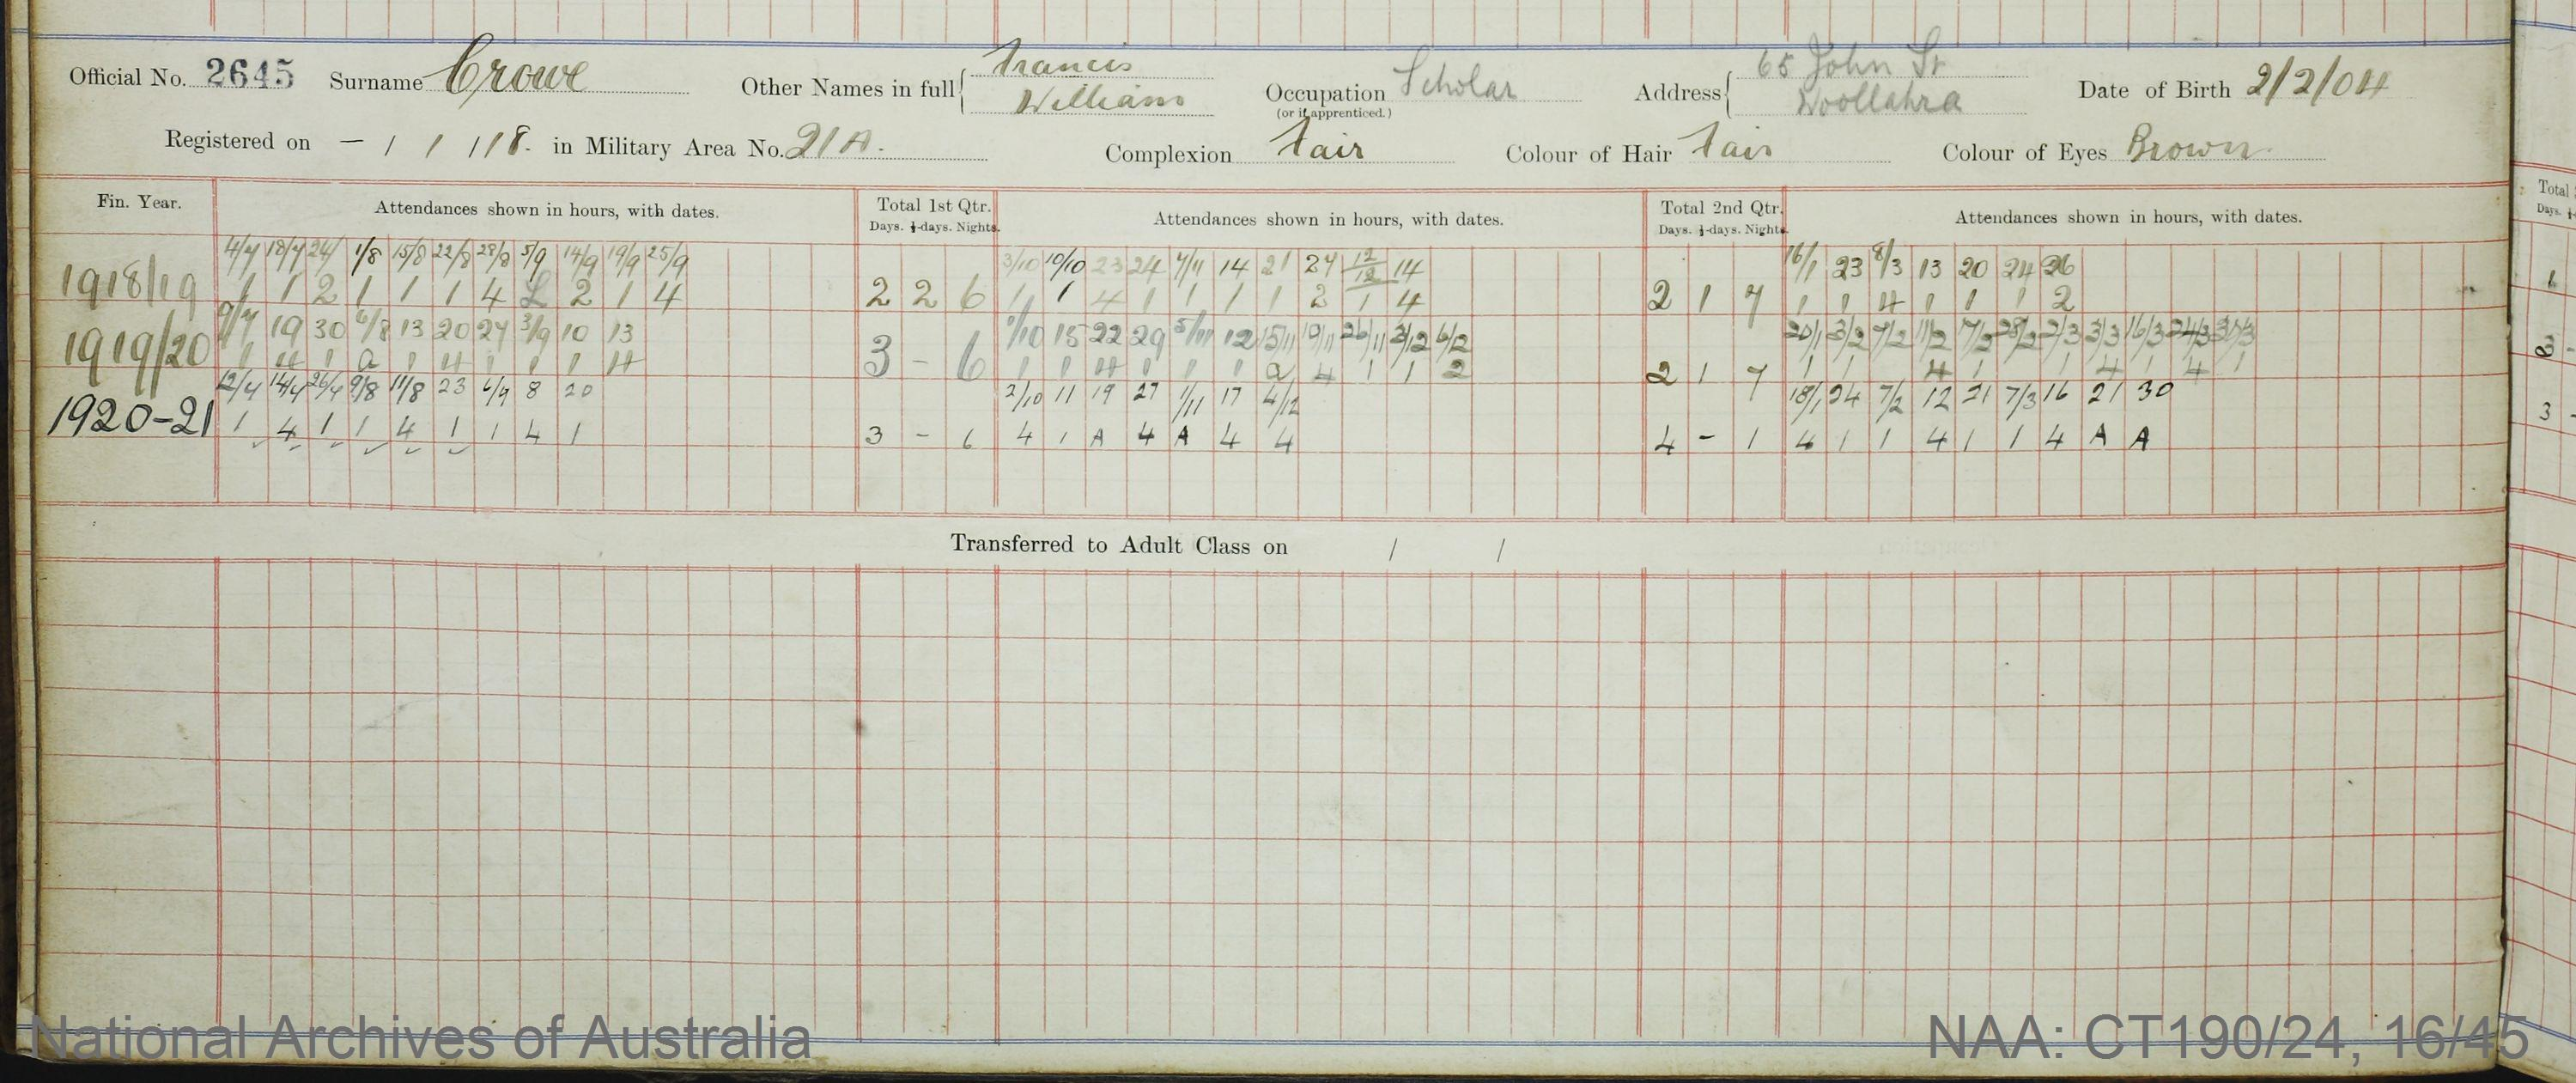 SURNAME - GROWE;  GIVEN NAME(S) - Frances William;  OFFICIAL NUMBER - 2645;  DATE OF BIRTH - 2 February 1904;  PLACE OF BIRTH - [Unknown];  NEXT OF KIN - [Unknown];  SERVICE/STATION - Sydney NSW;  REGISTRATION DATE - January 1918